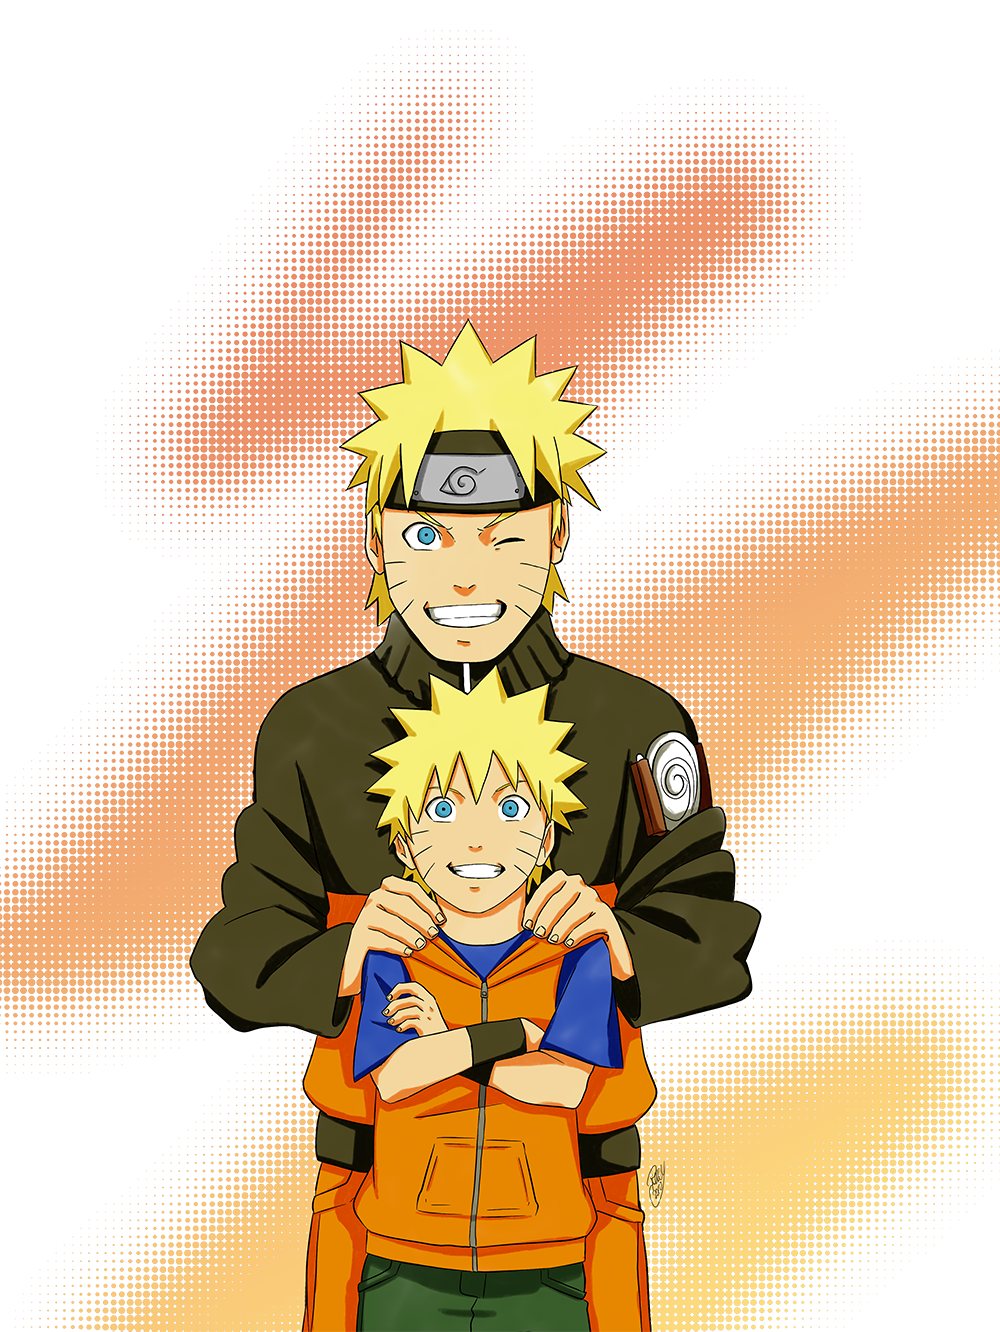 The Kid in Black & Orange – Naruto Uzumaki | Daily Anime Art